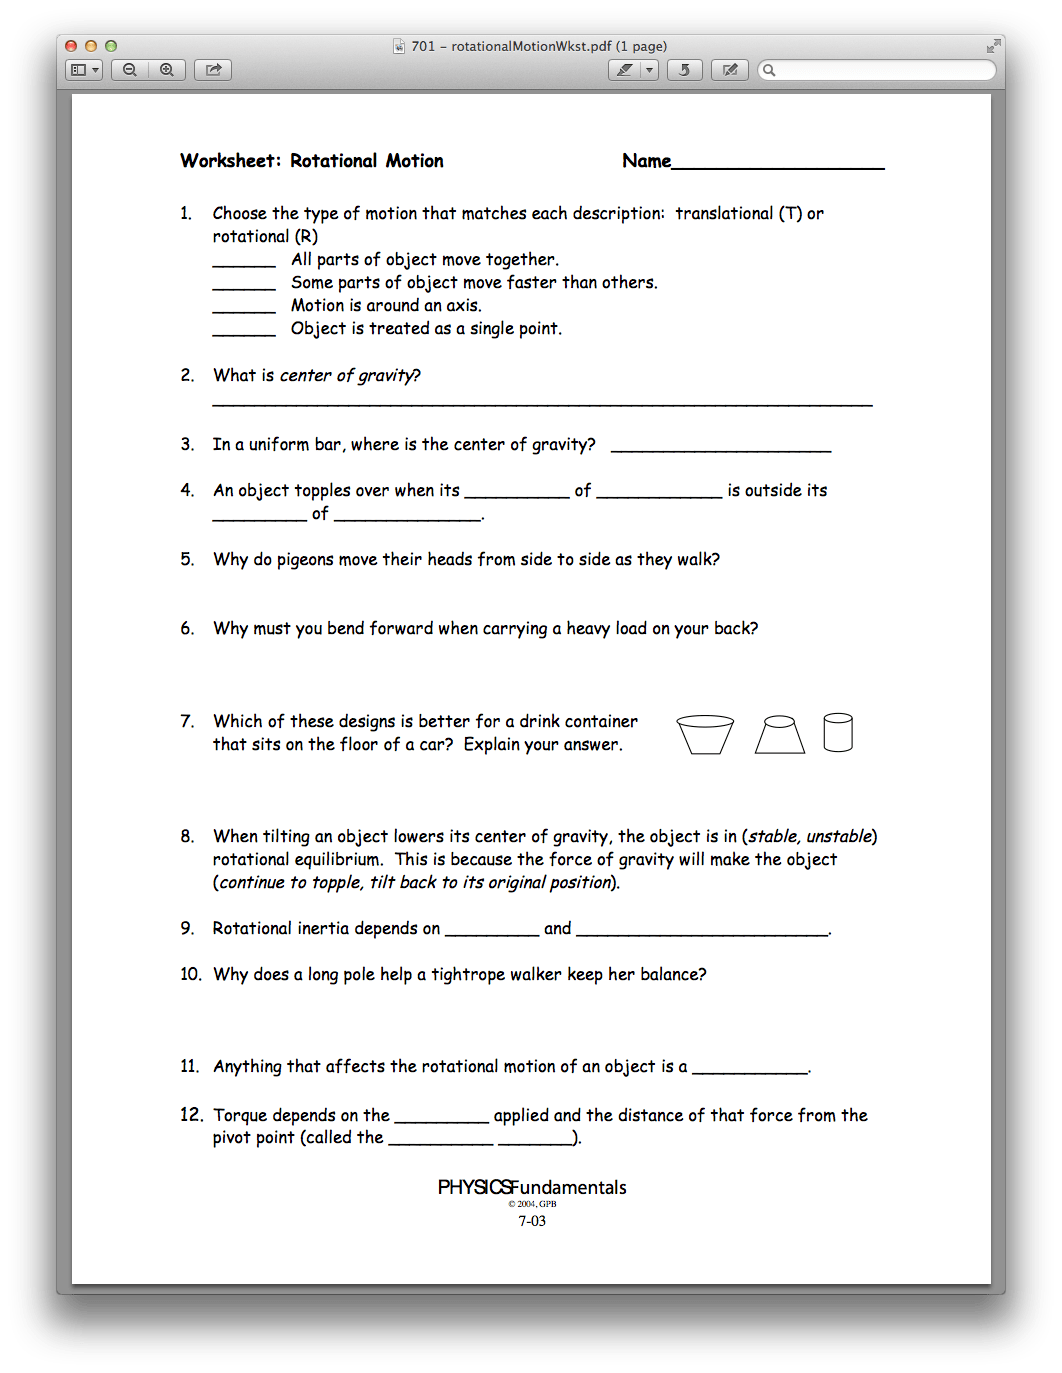 Circular Motion And Inertia Worksheet Answers